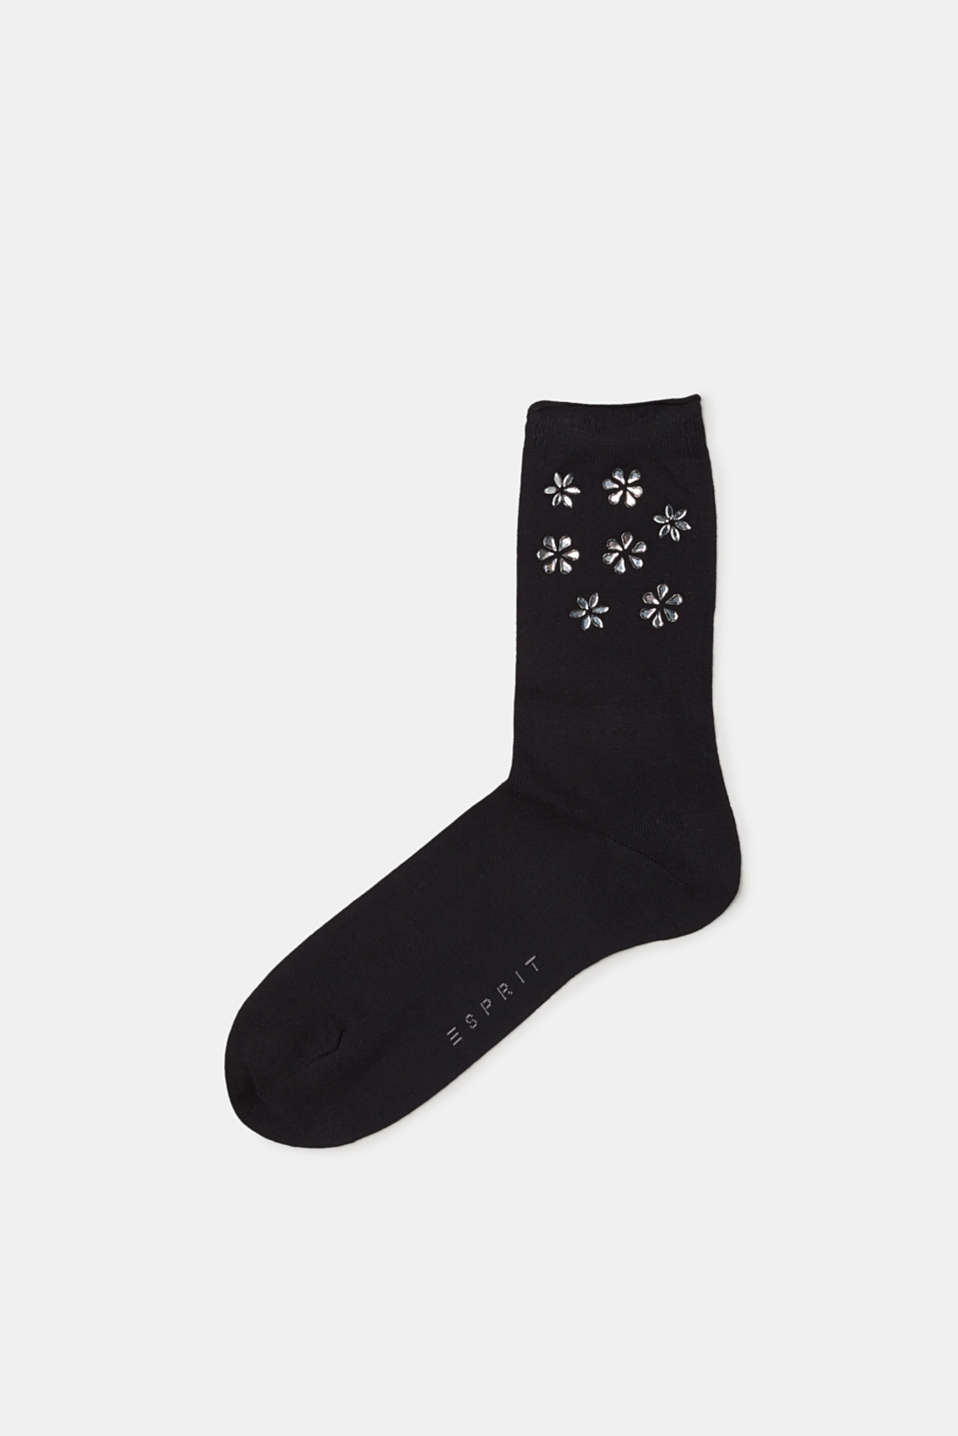 Esprit - Fine socks with facet-cut stones